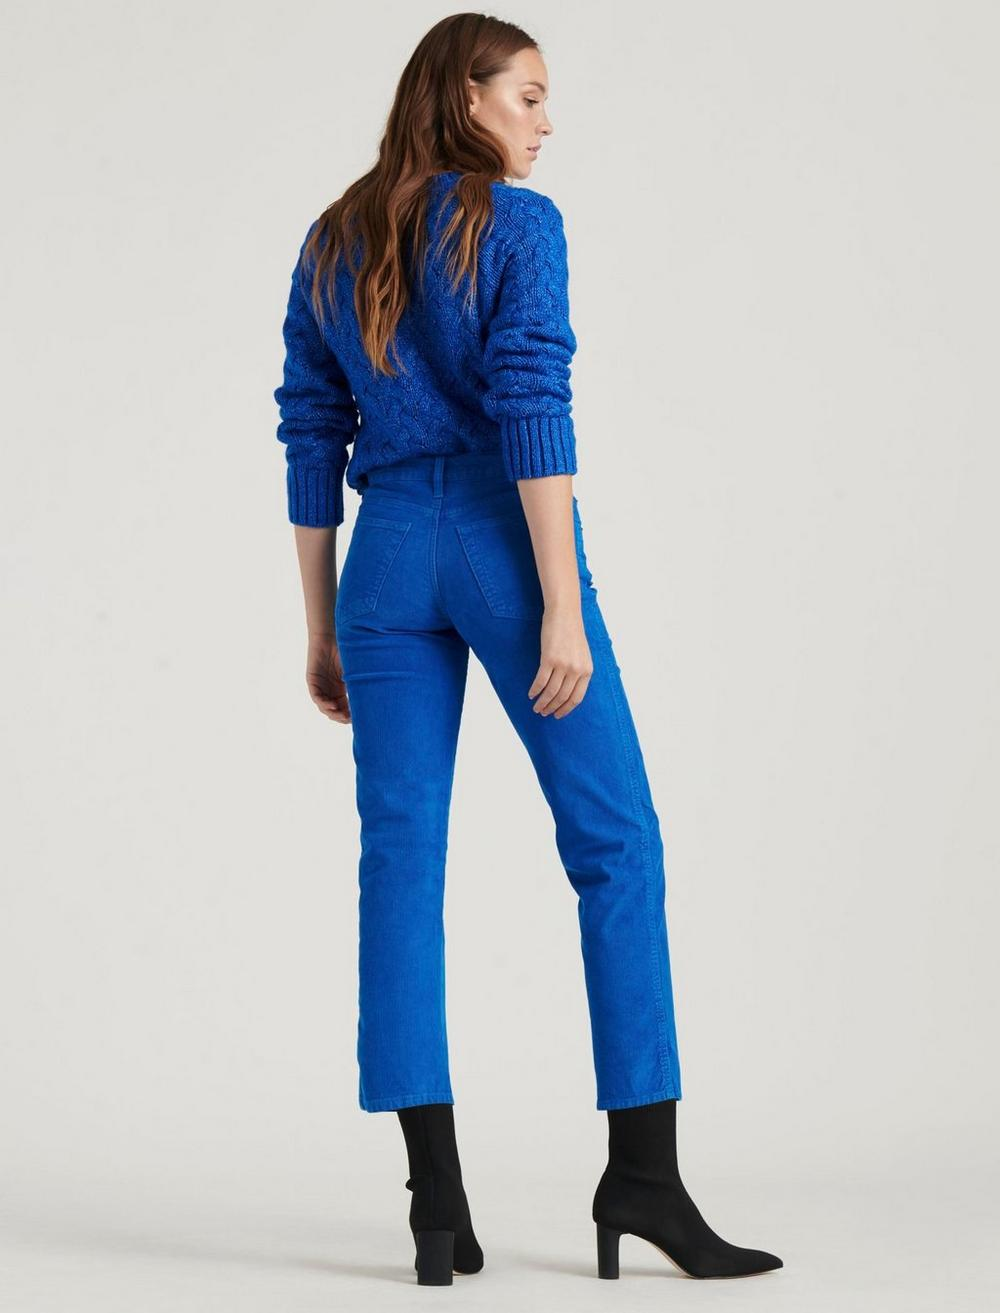 MID RISE AUTHENTIC STRAIGHT CROP CORDUROY JEAN, image 4